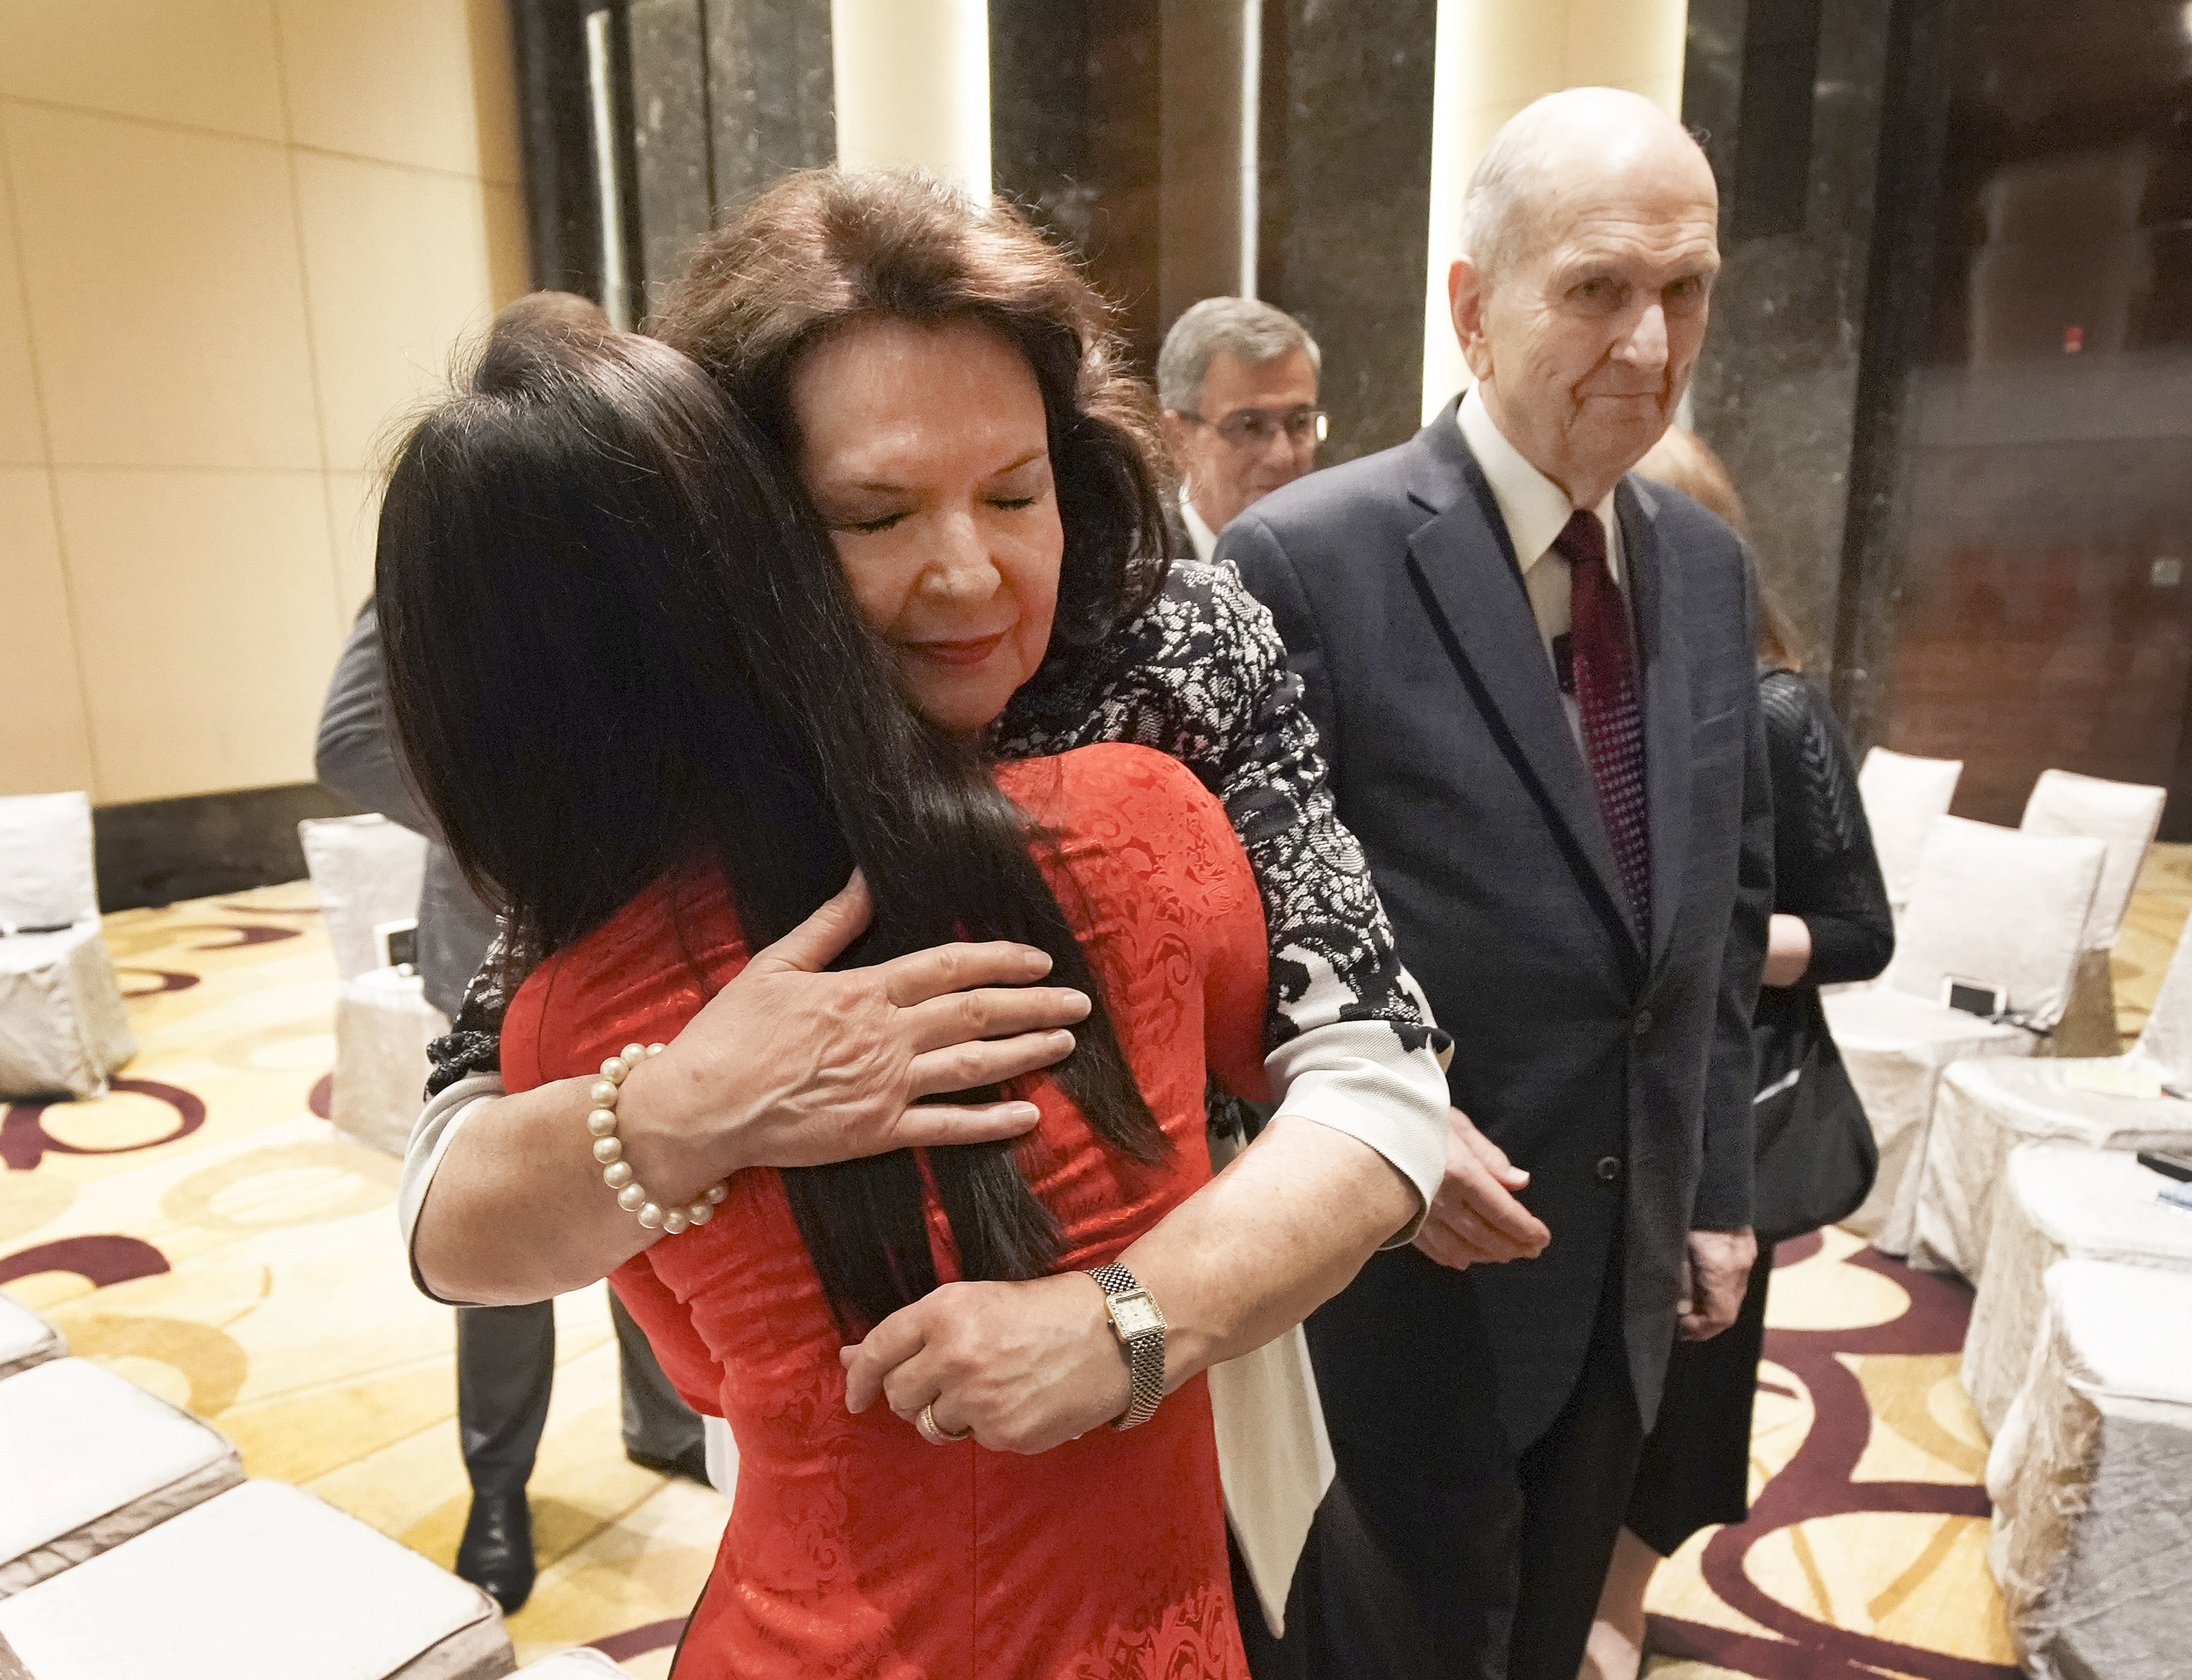 Sister Wendy Nelson hugs Nguyet Minh Nguyen as she and President Russell M. Nelson of The Church of Jesus Christ of Latter-day Saints, meet with youth in Hanoi, Vietnam, on Sunday, Nov. 17, 2019.